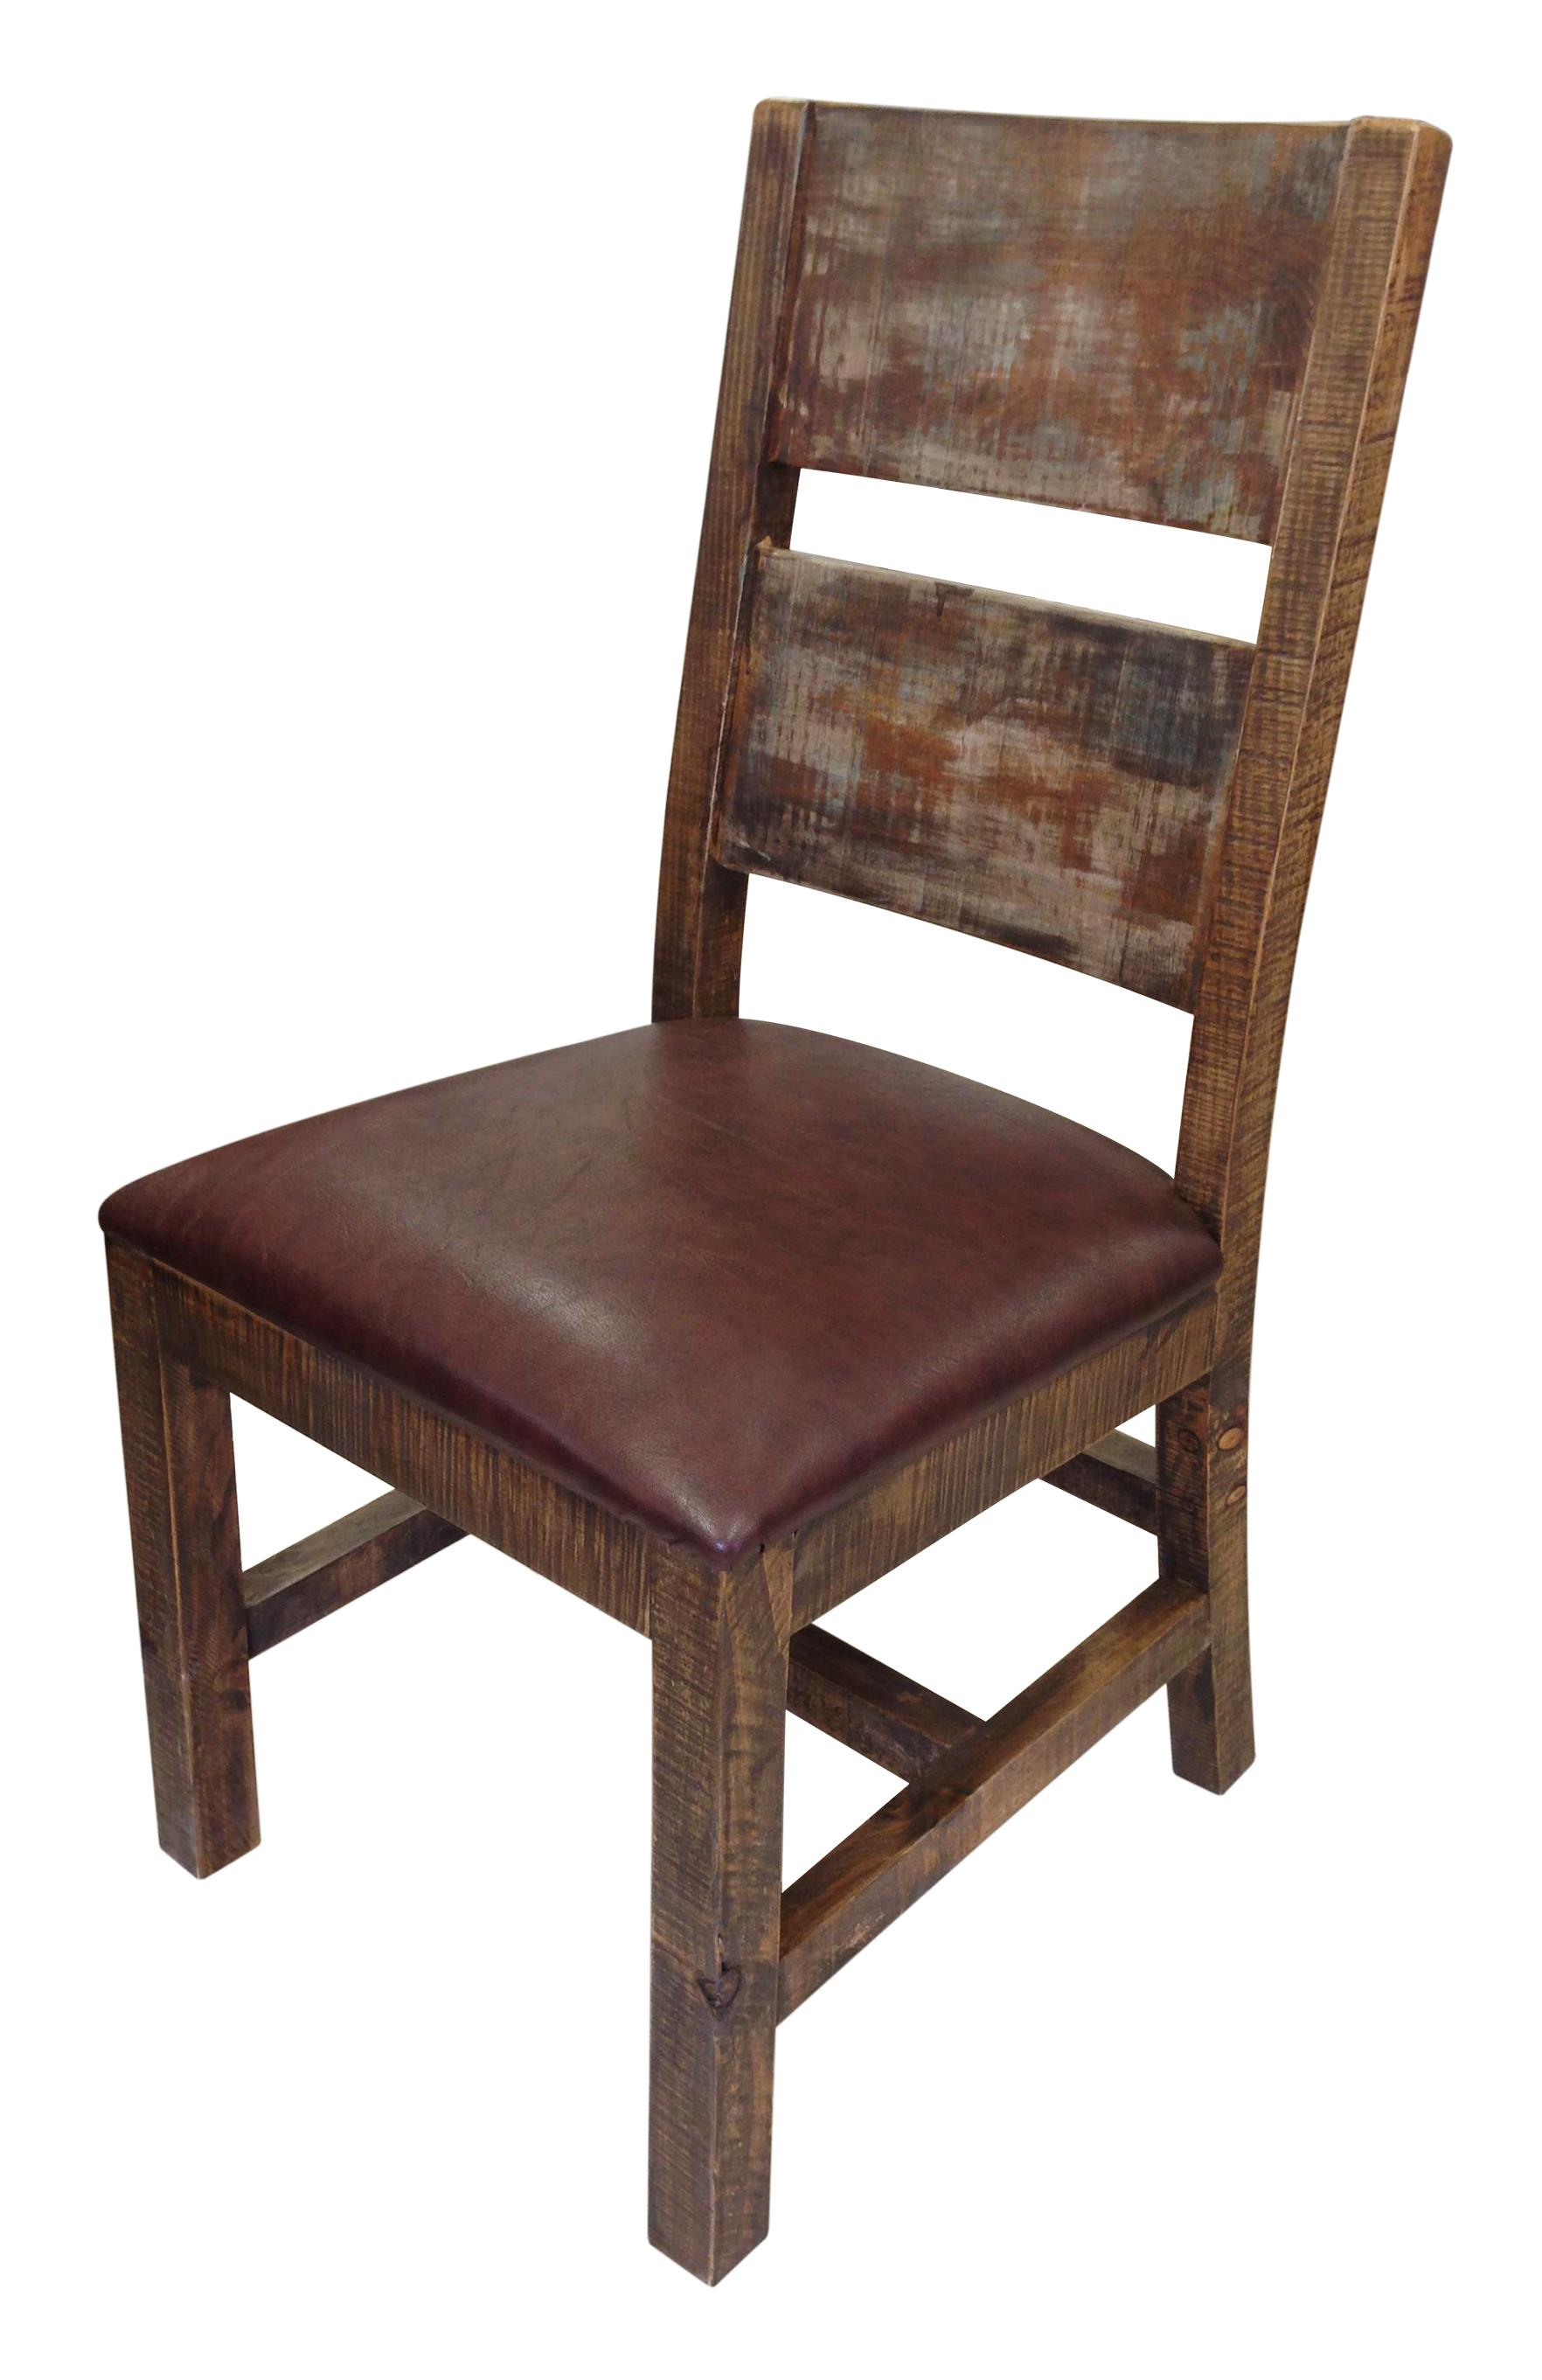 Solid Wood Chair with Bonded Leather Seat